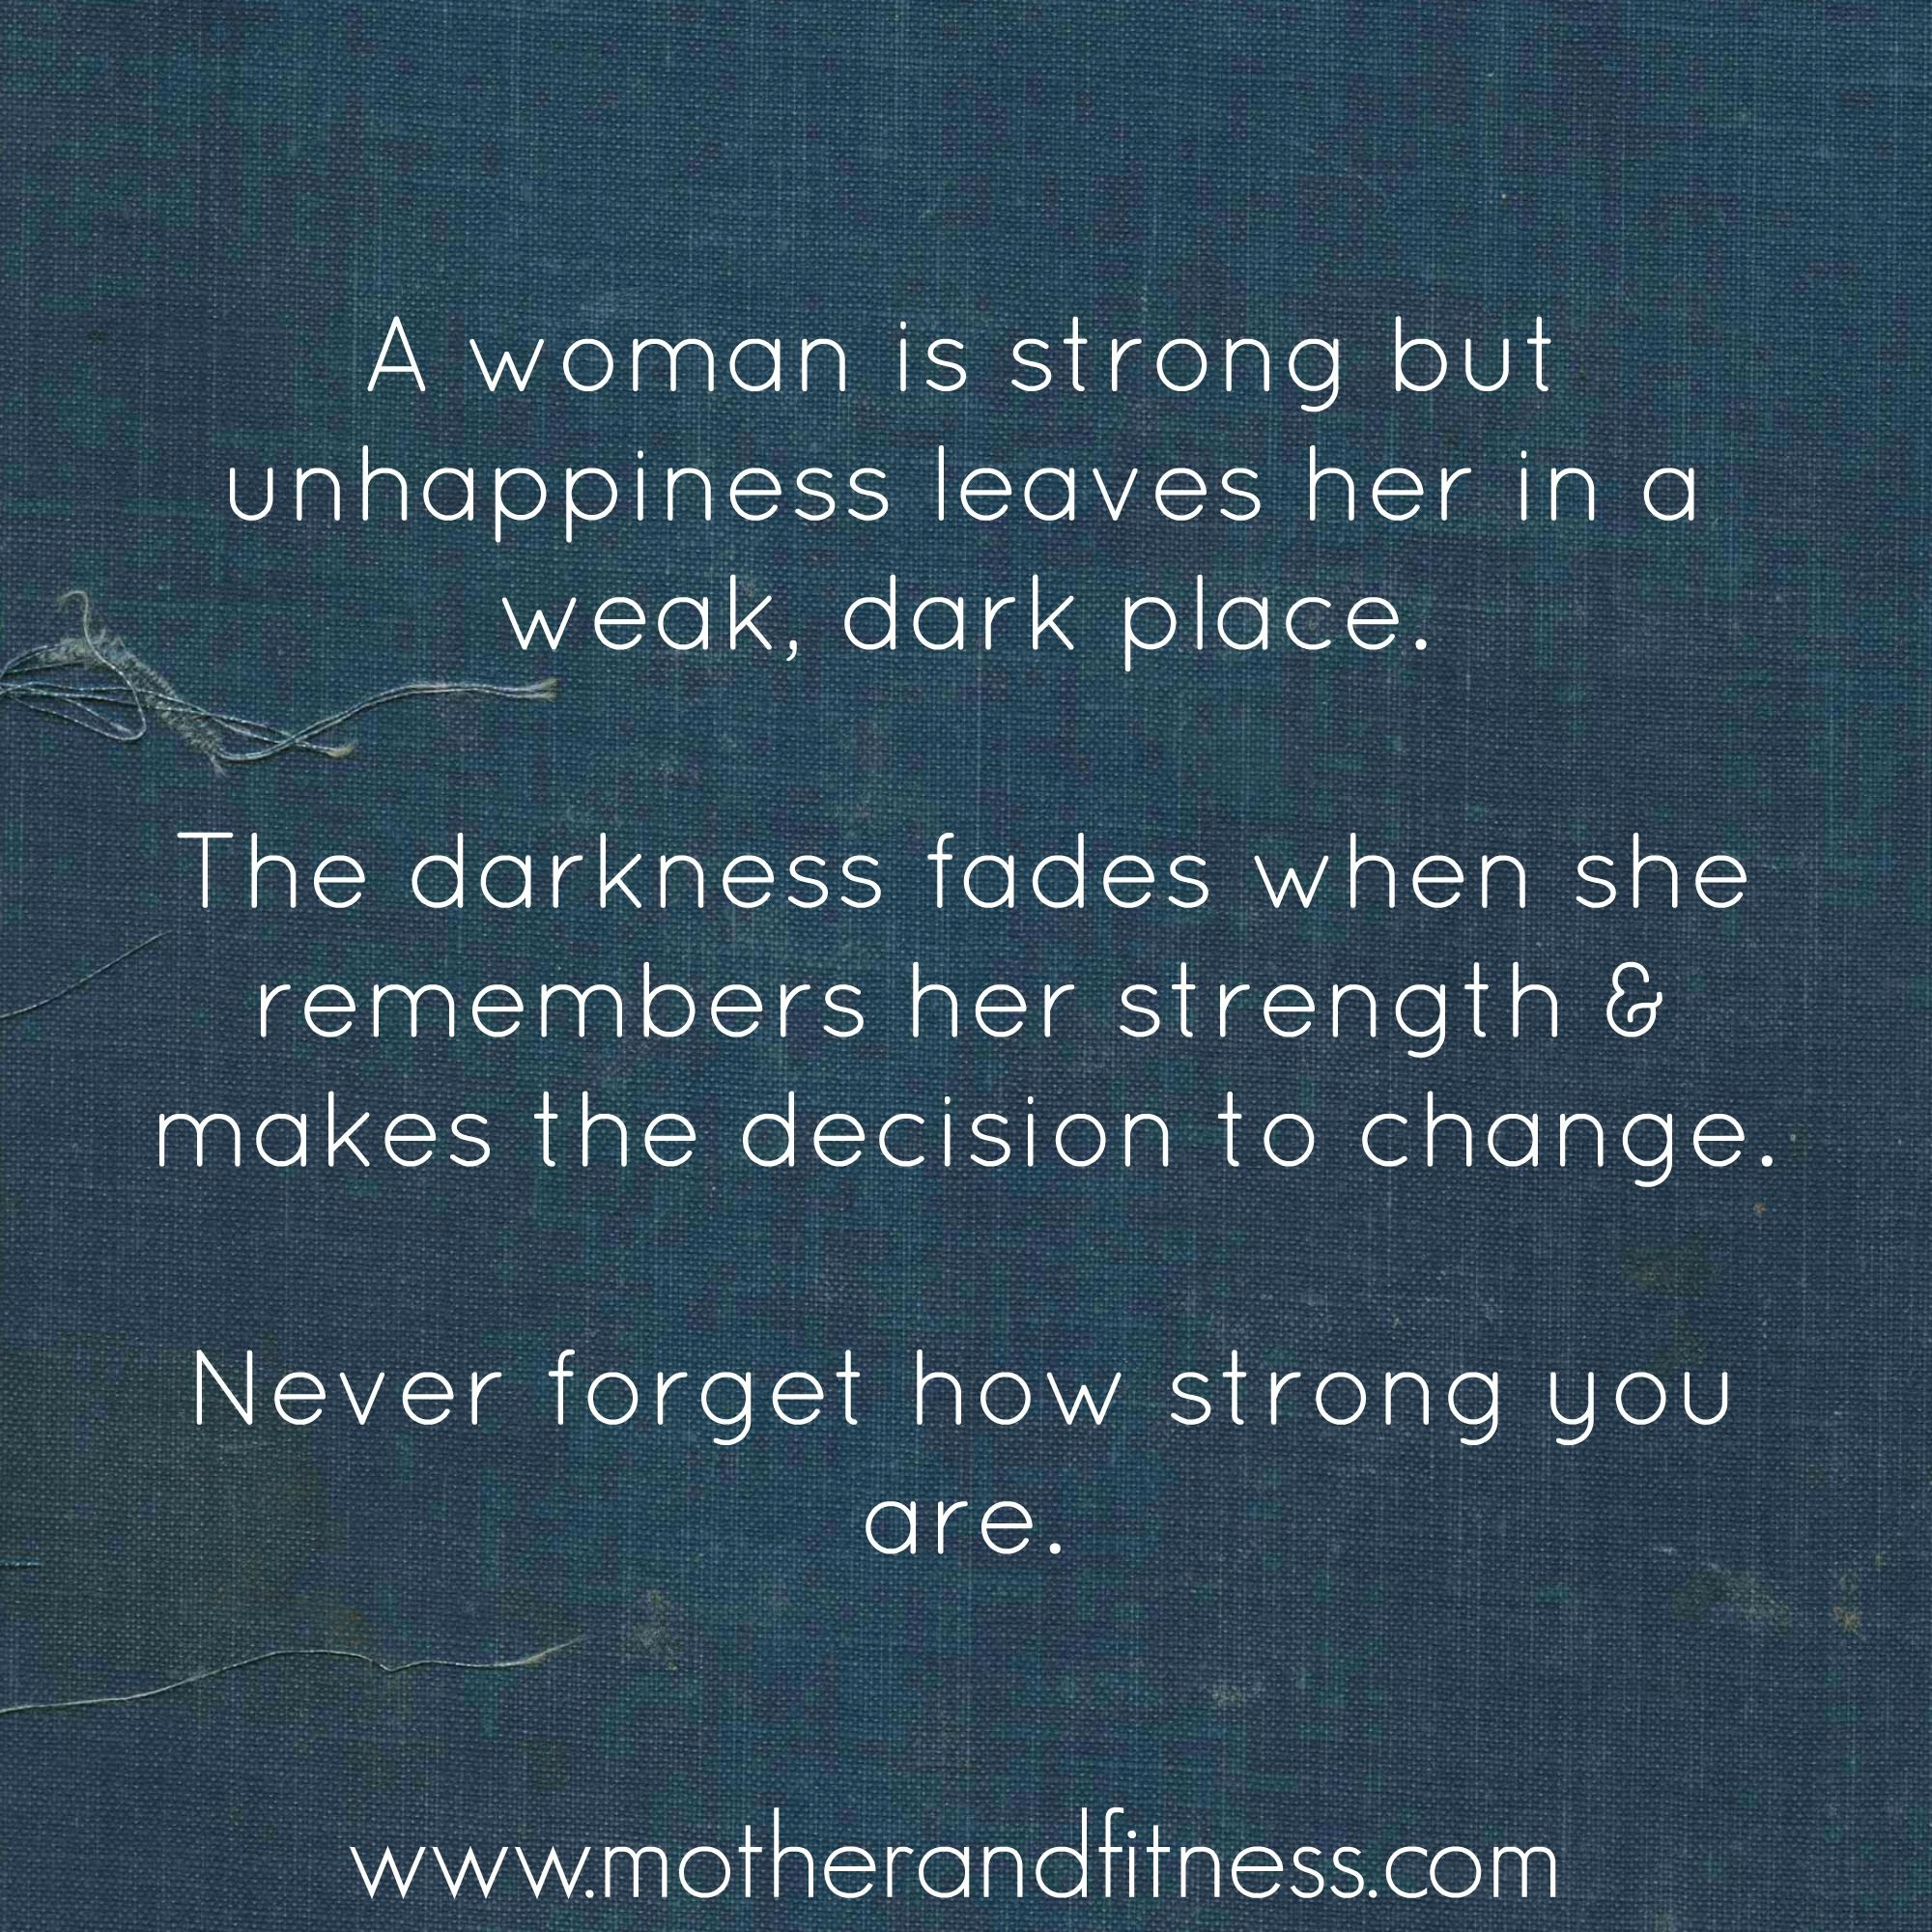 Woman Are Strong Mother Quotes Fitness Quotes Mantras